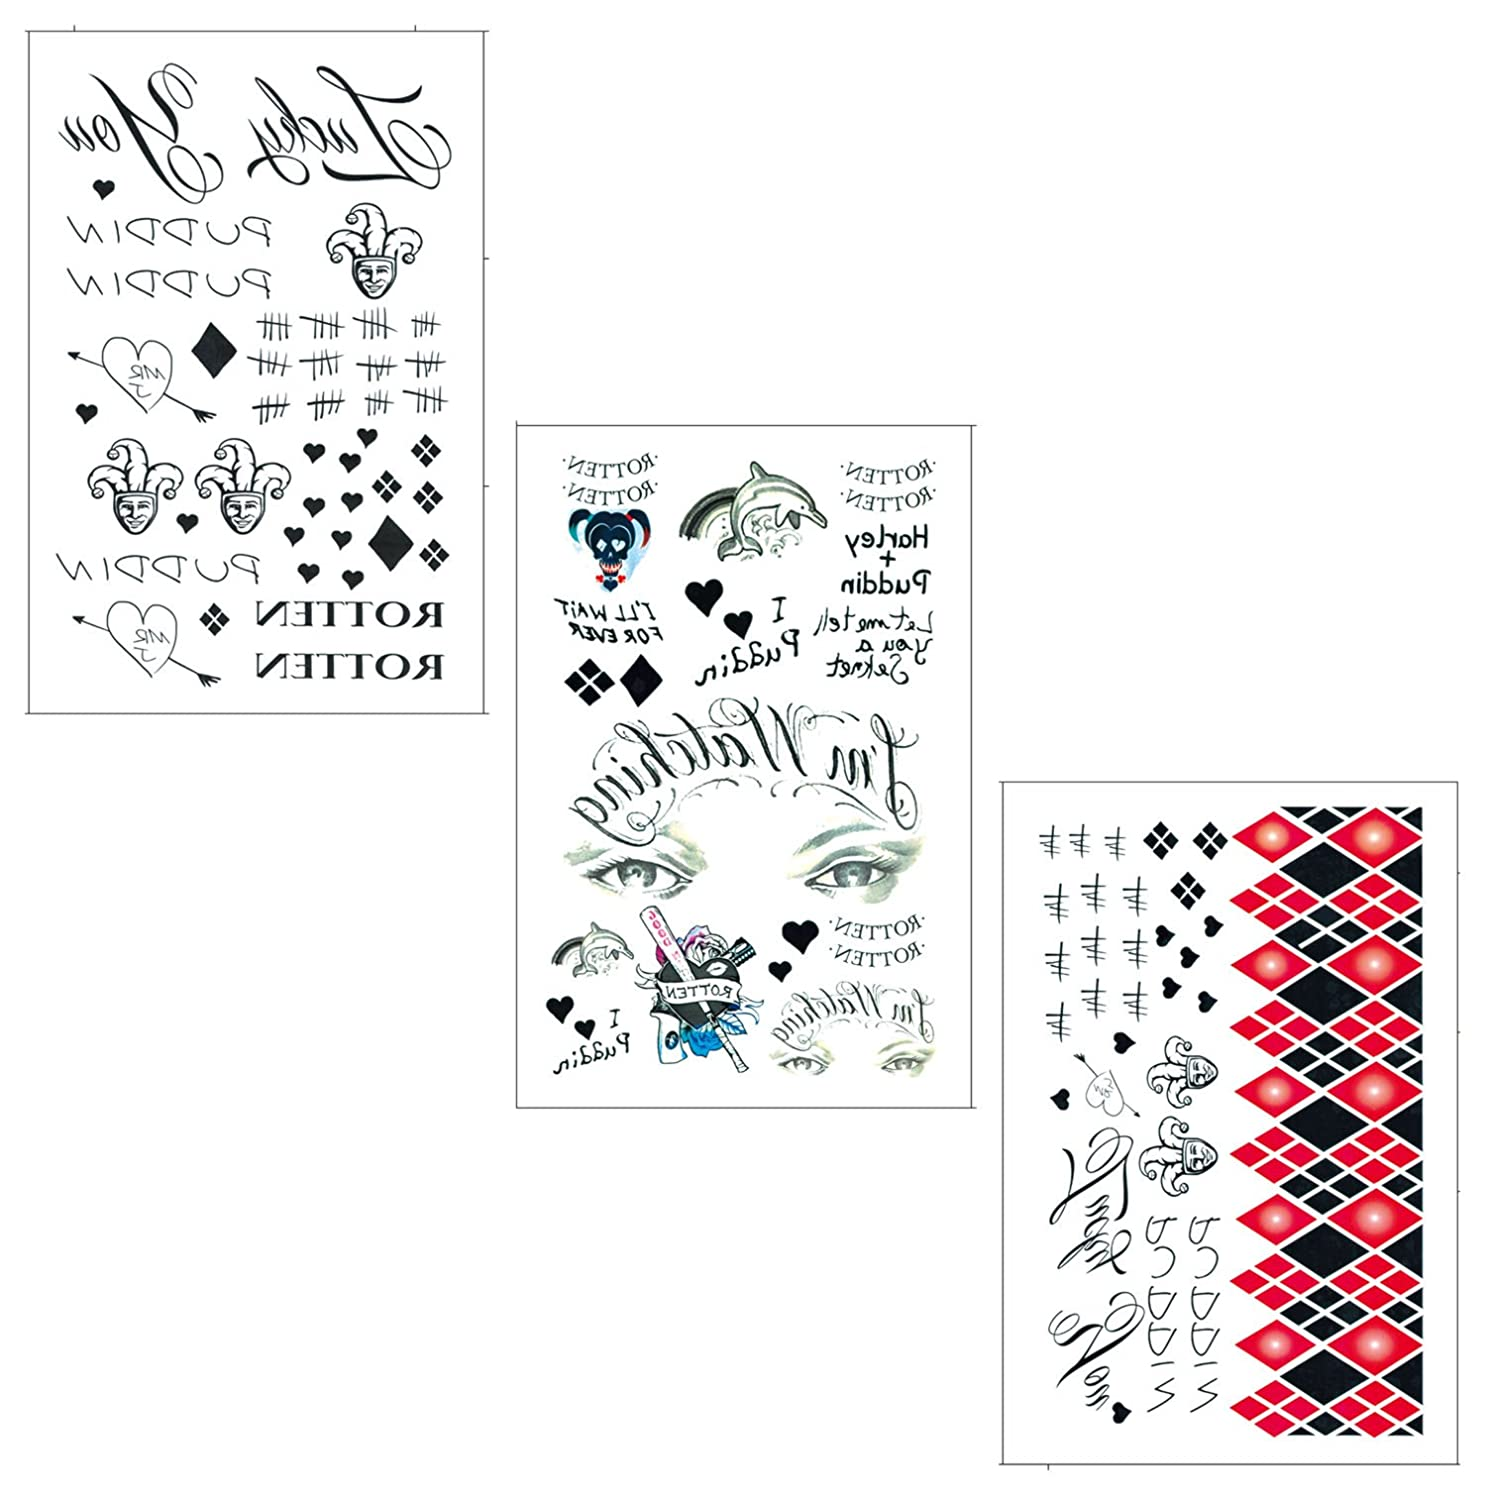 DaLin Temporary Tattoos for Costume Accessories and Parties 3 Large Sheets (HQ Collection)